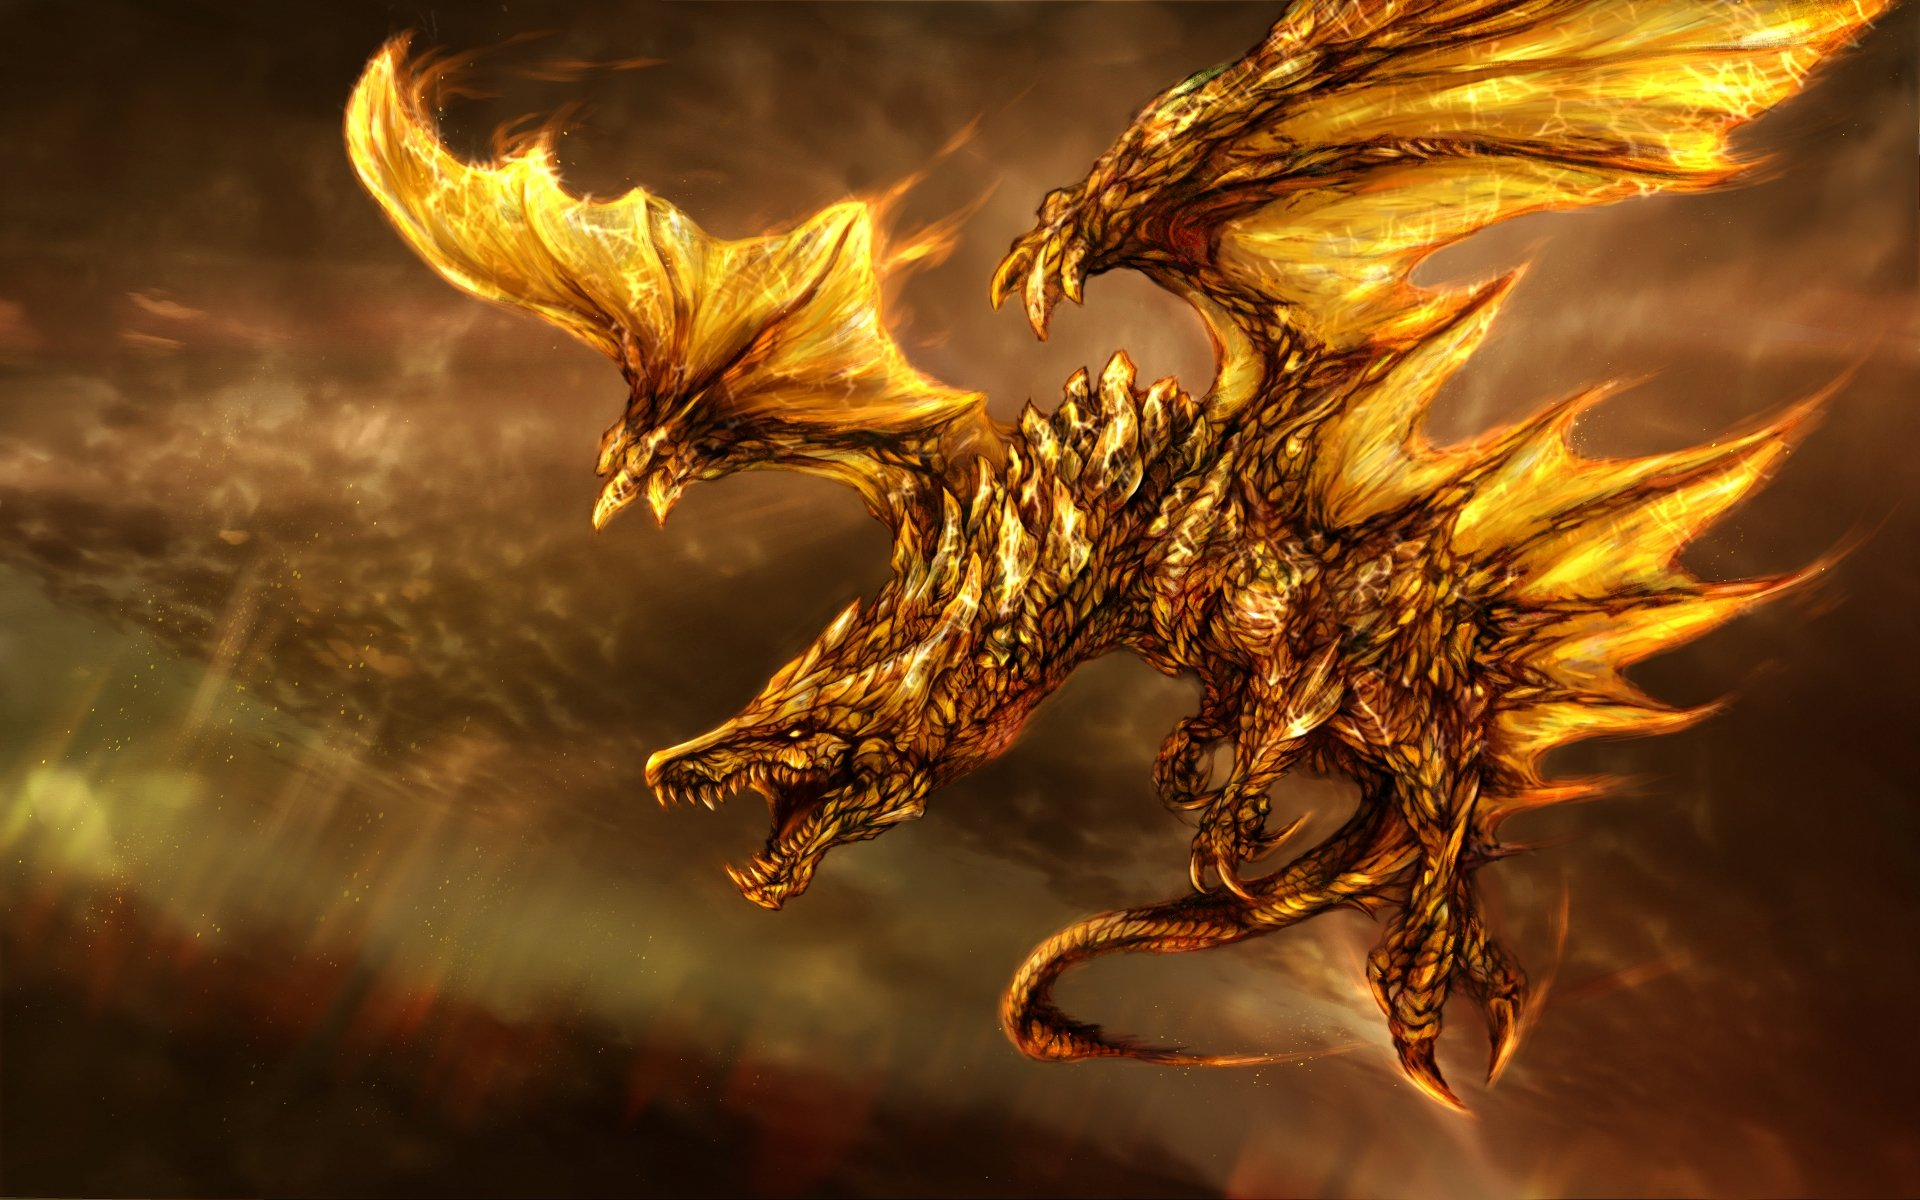 Cool Dragon Wallpaper 41604 1920x1200 px HDWallSourcecom